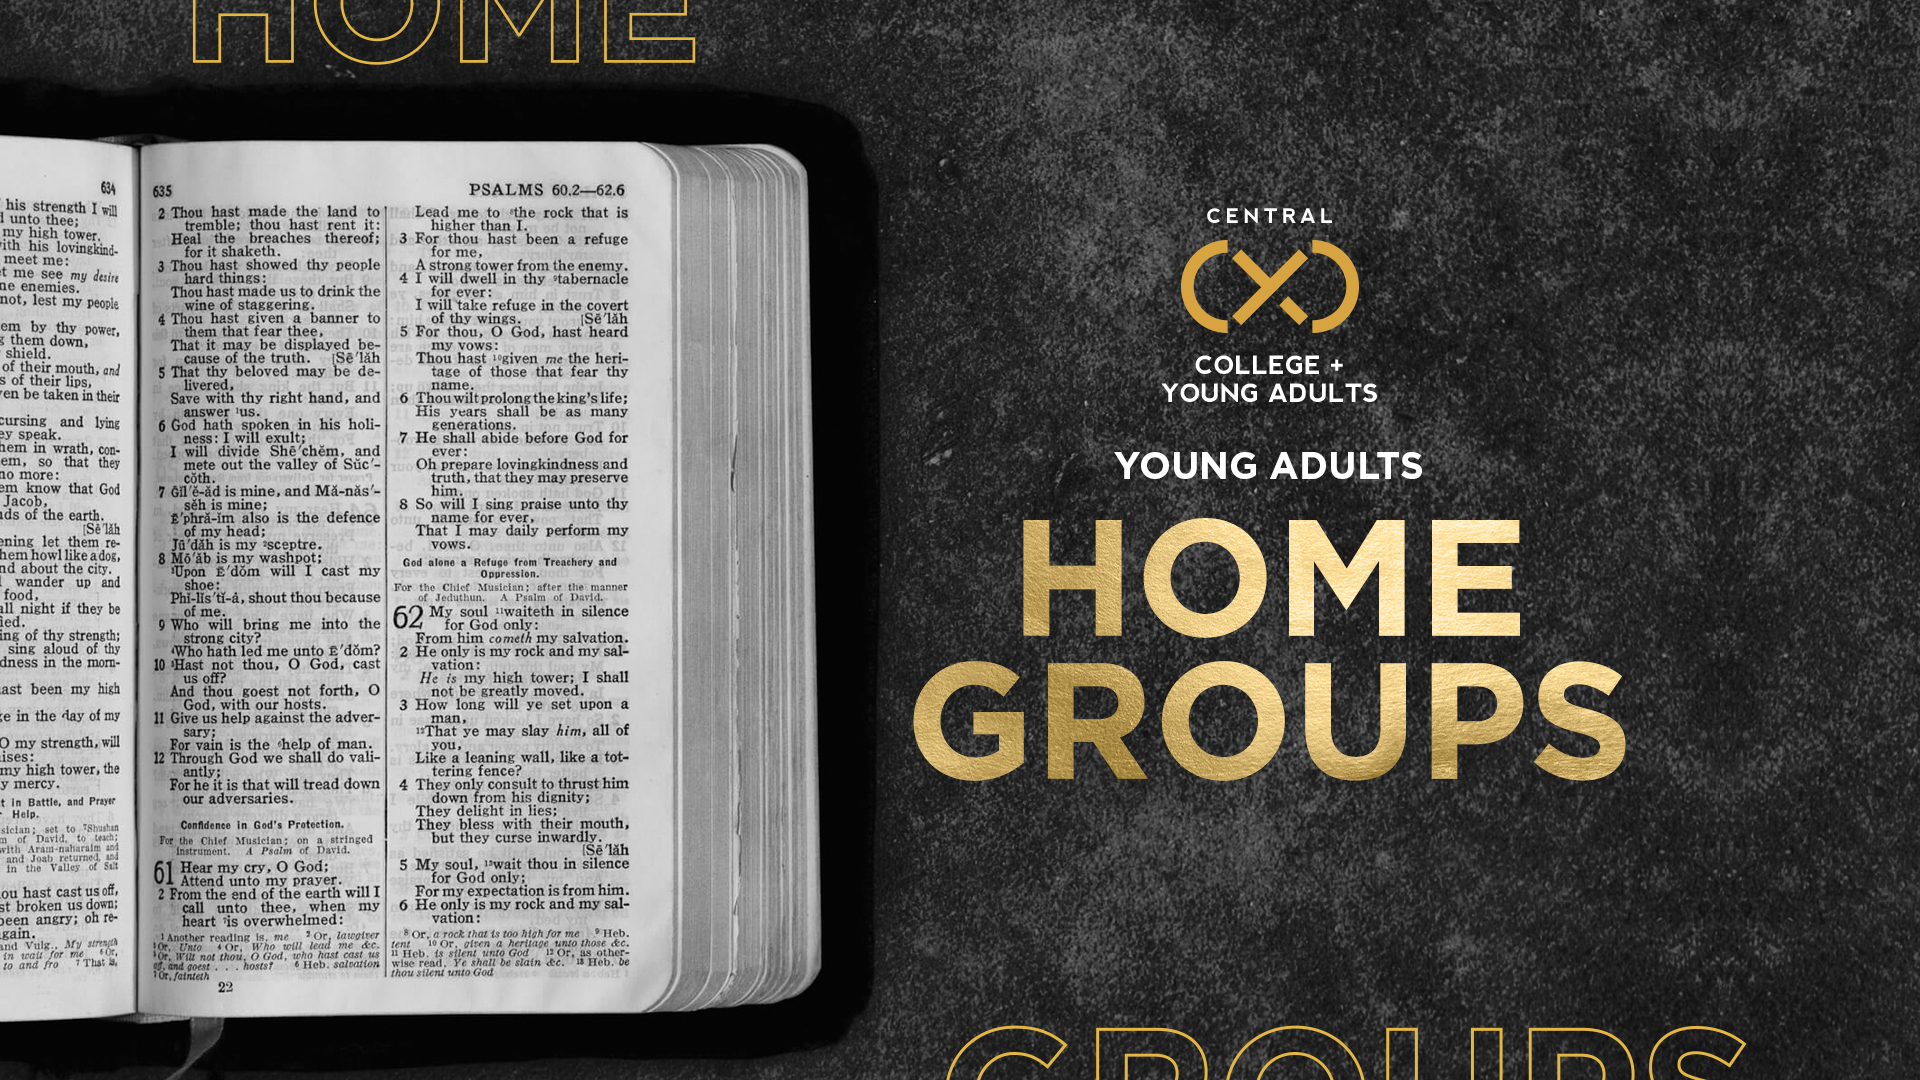 Young Adult House Groups